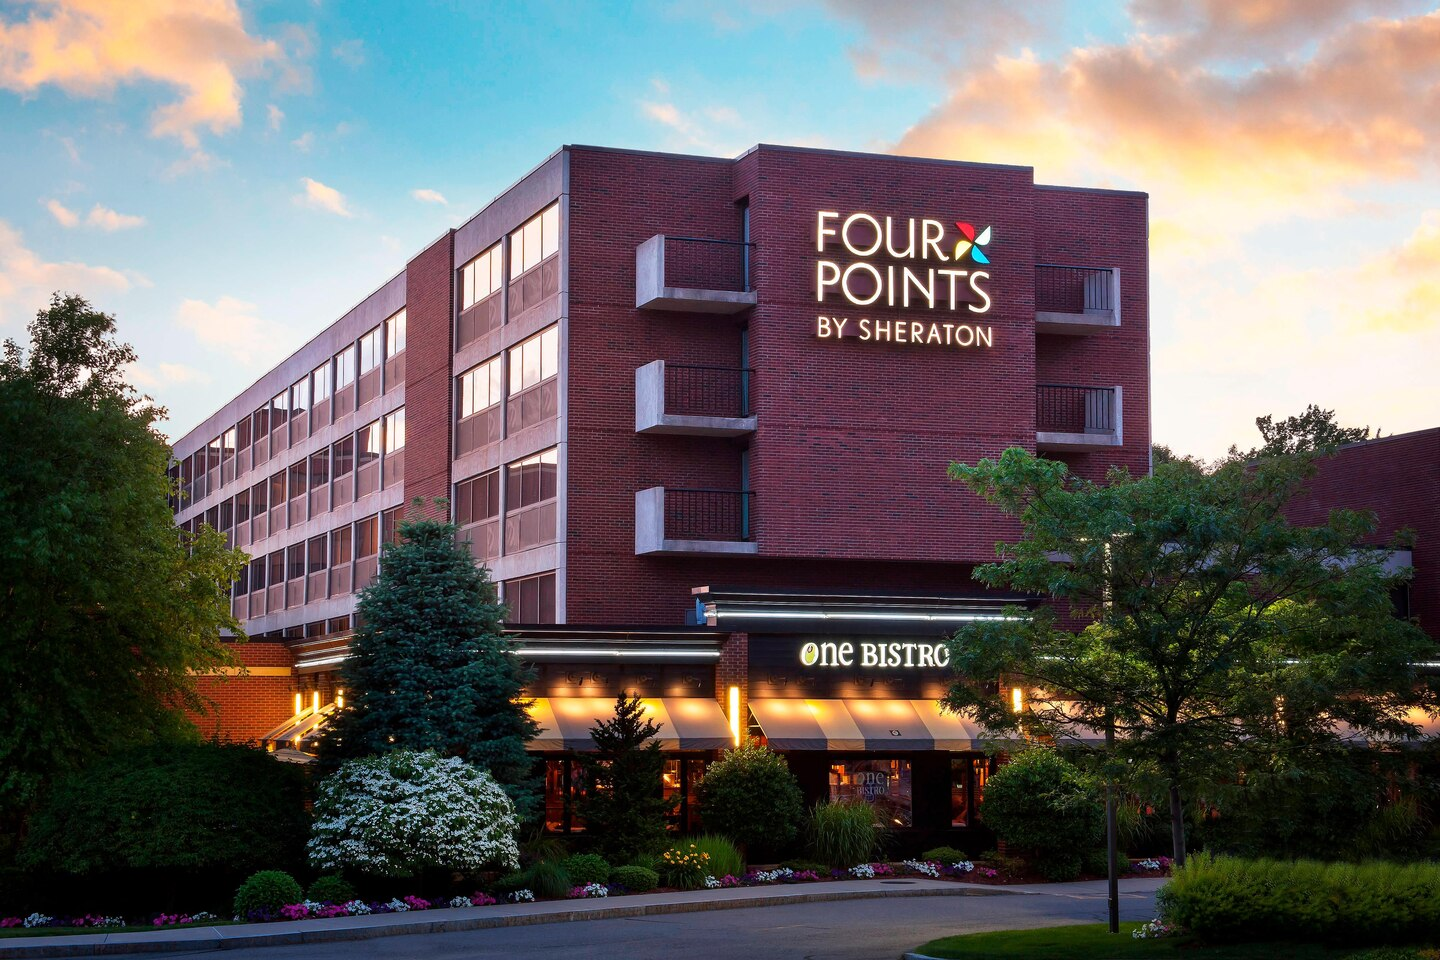 Four Points by Sheraton Norwood Offers Anti-Viral Protection with Pure Rooms